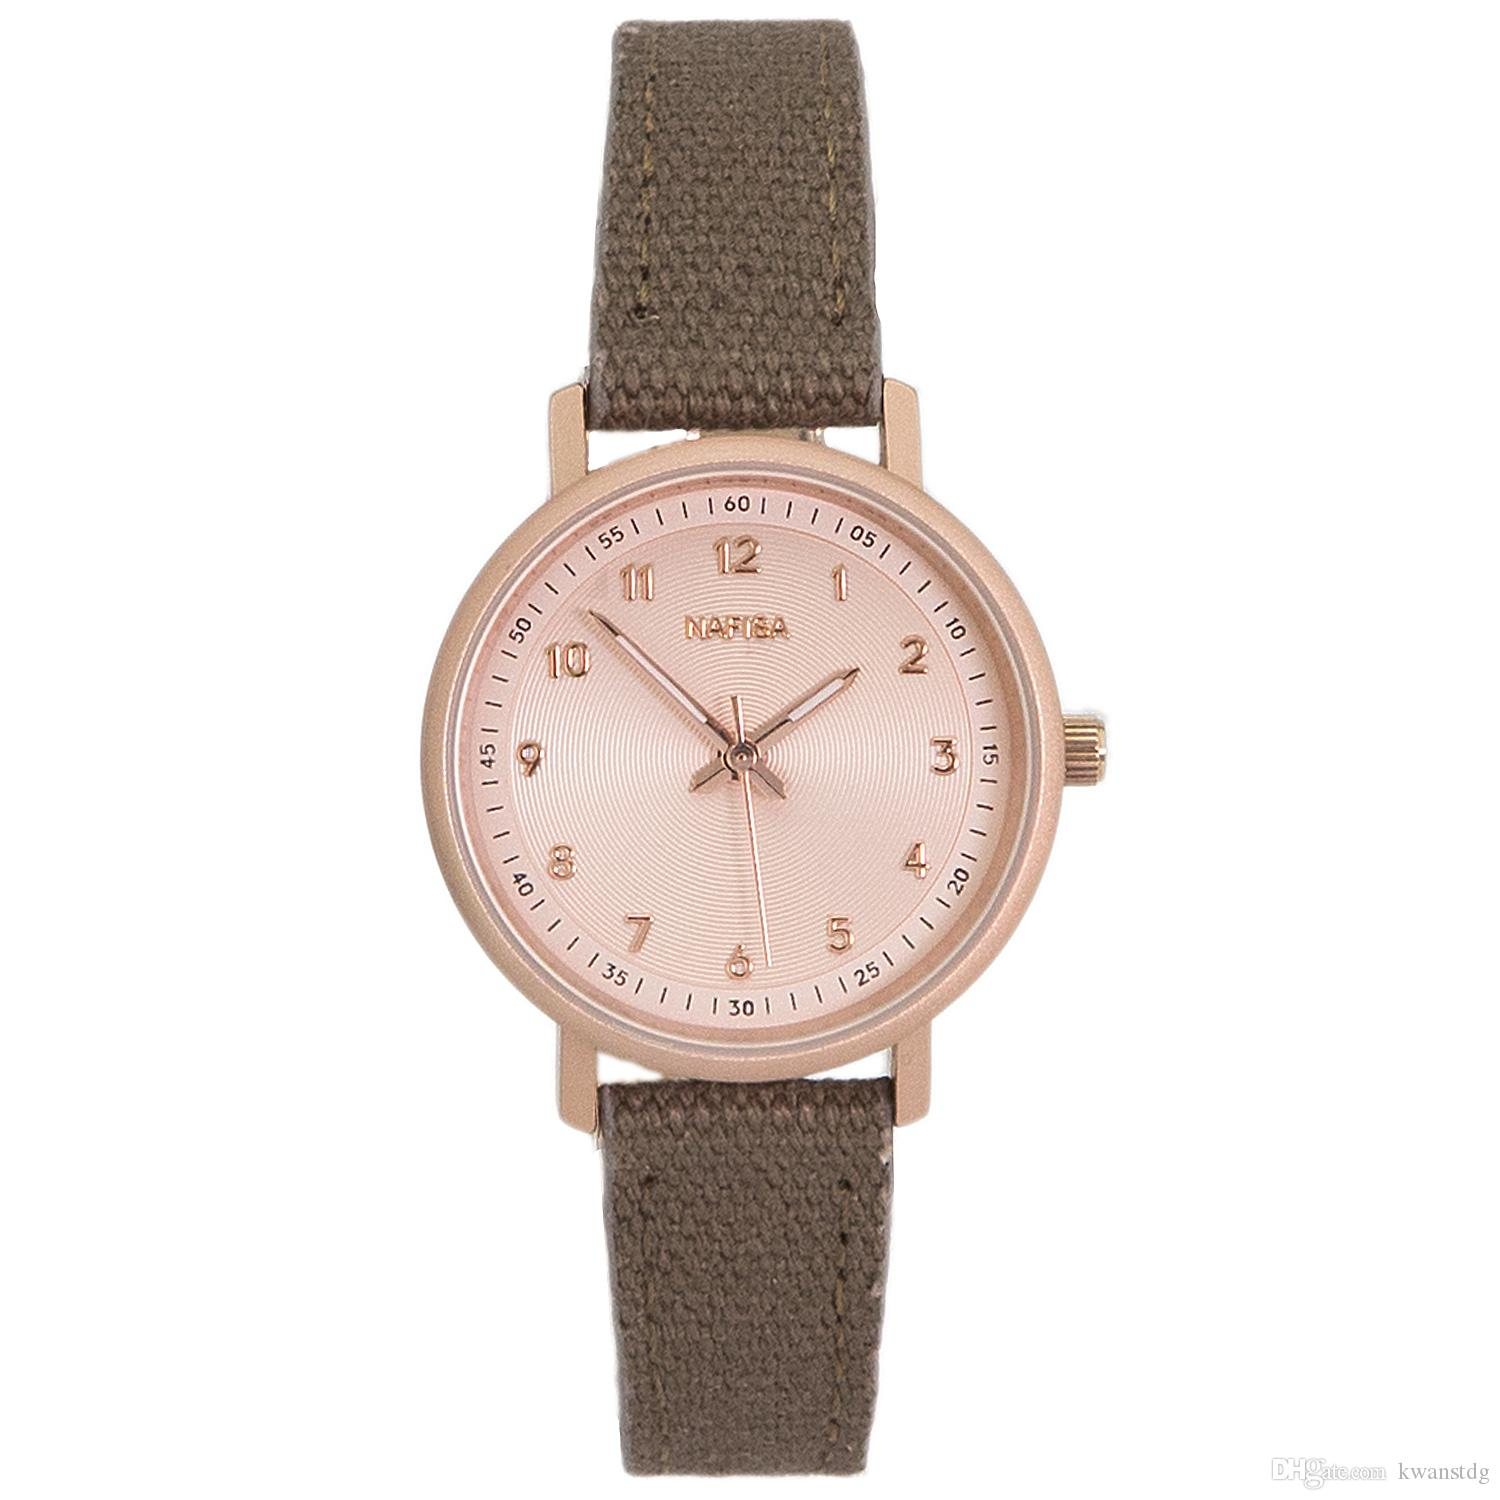 Nafisa da donna casual Dress Lady Fashion oro rosa color quarzo bicolore marrone cinturino in pelle color grigio orologio NA-0186